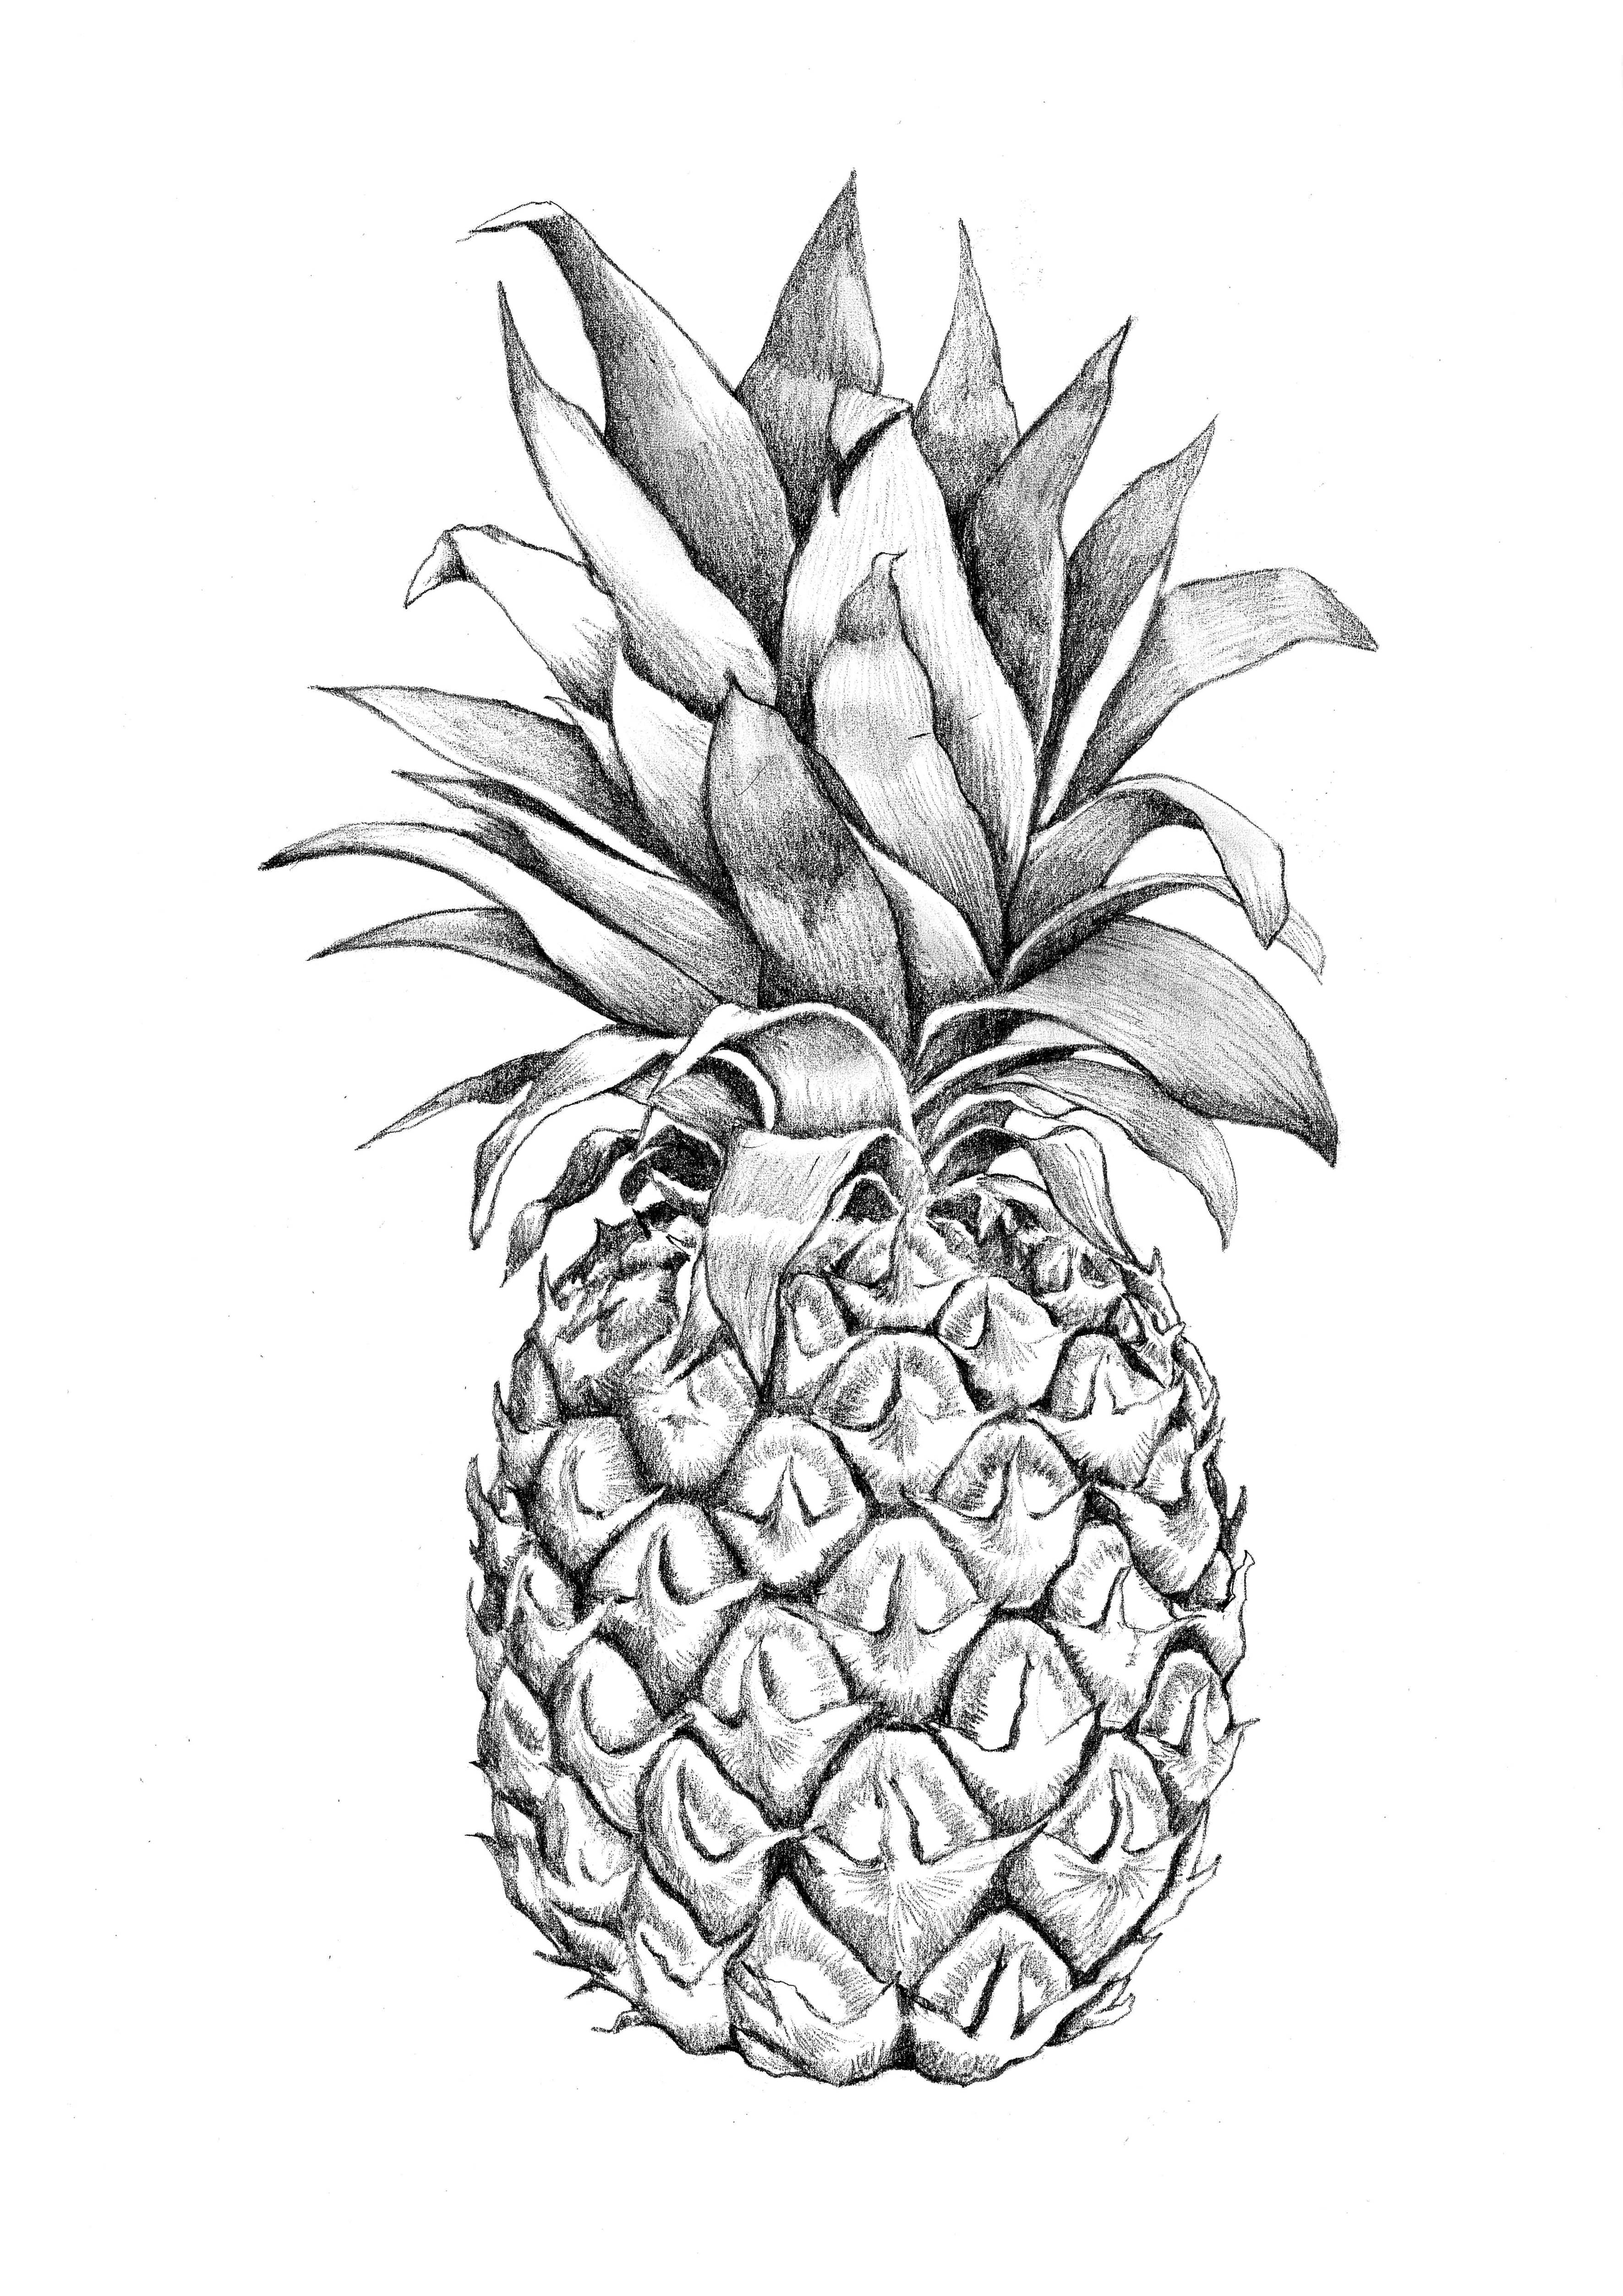 pineapple drawing pineapple drawing by banvivirie on deviantart drawing pineapple